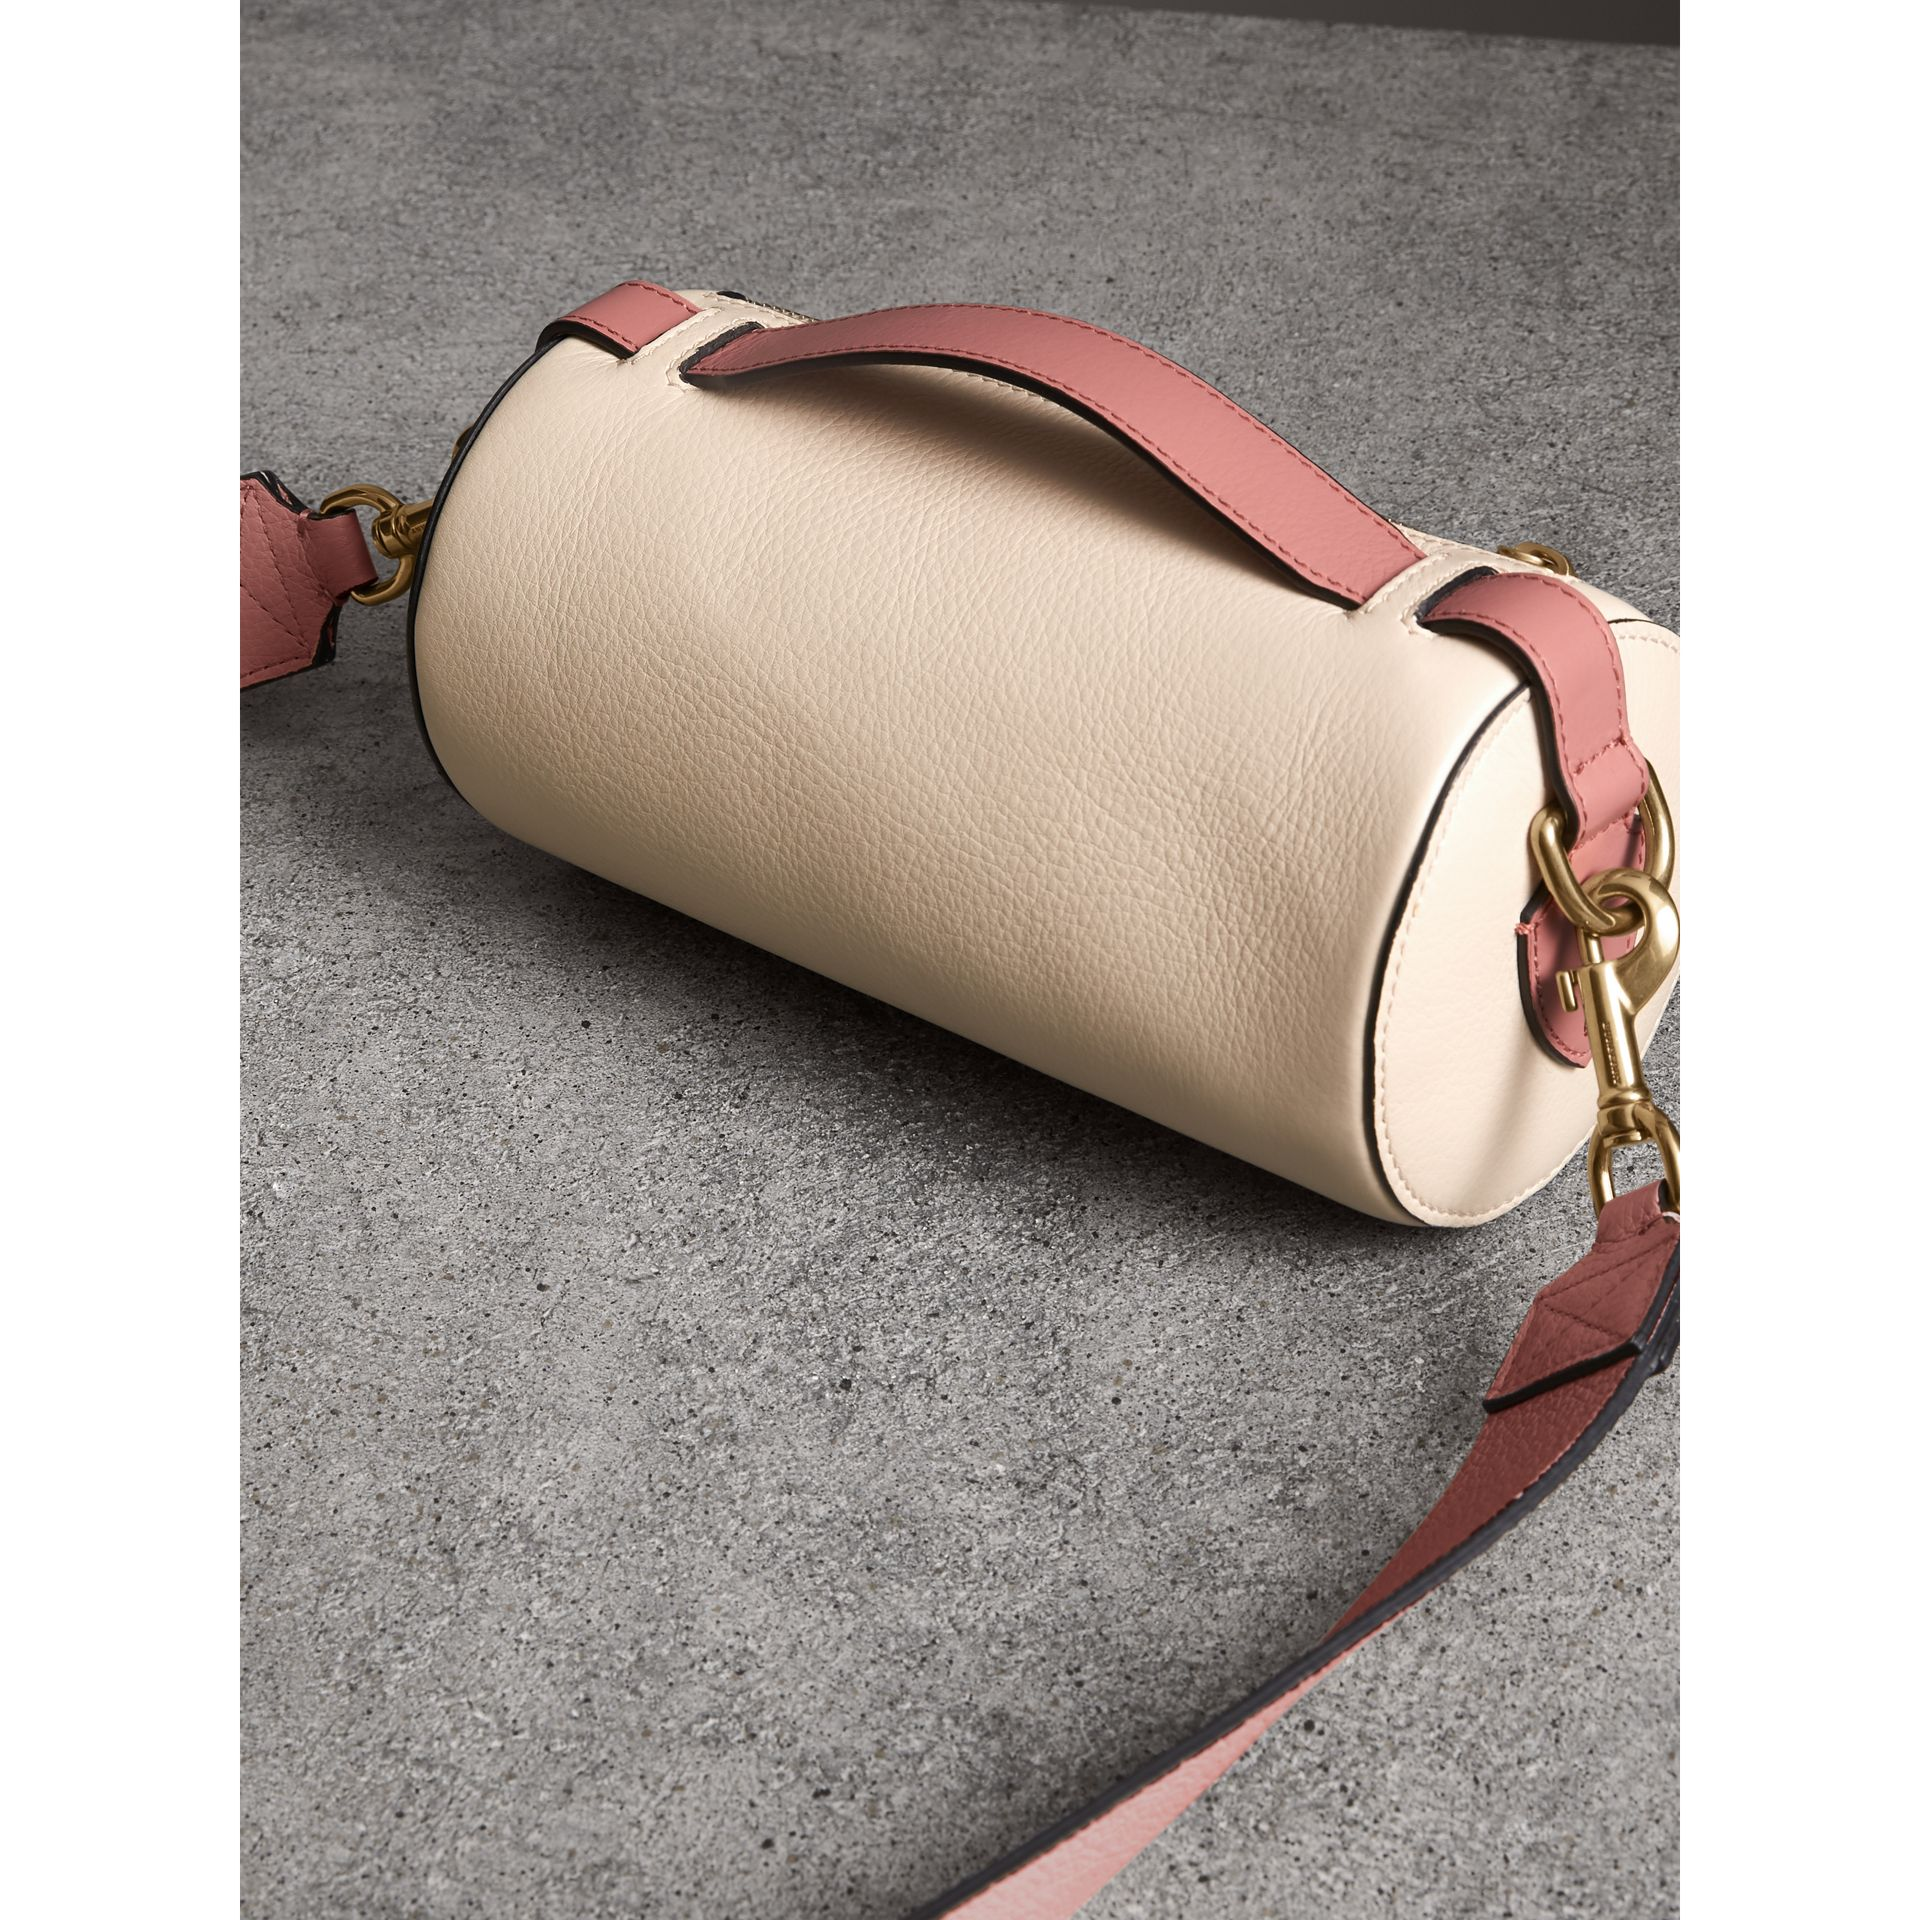 Sac The Barrel en cuir (Calcaire/rose Cendré) - Femme | Burberry Canada - photo de la galerie 2